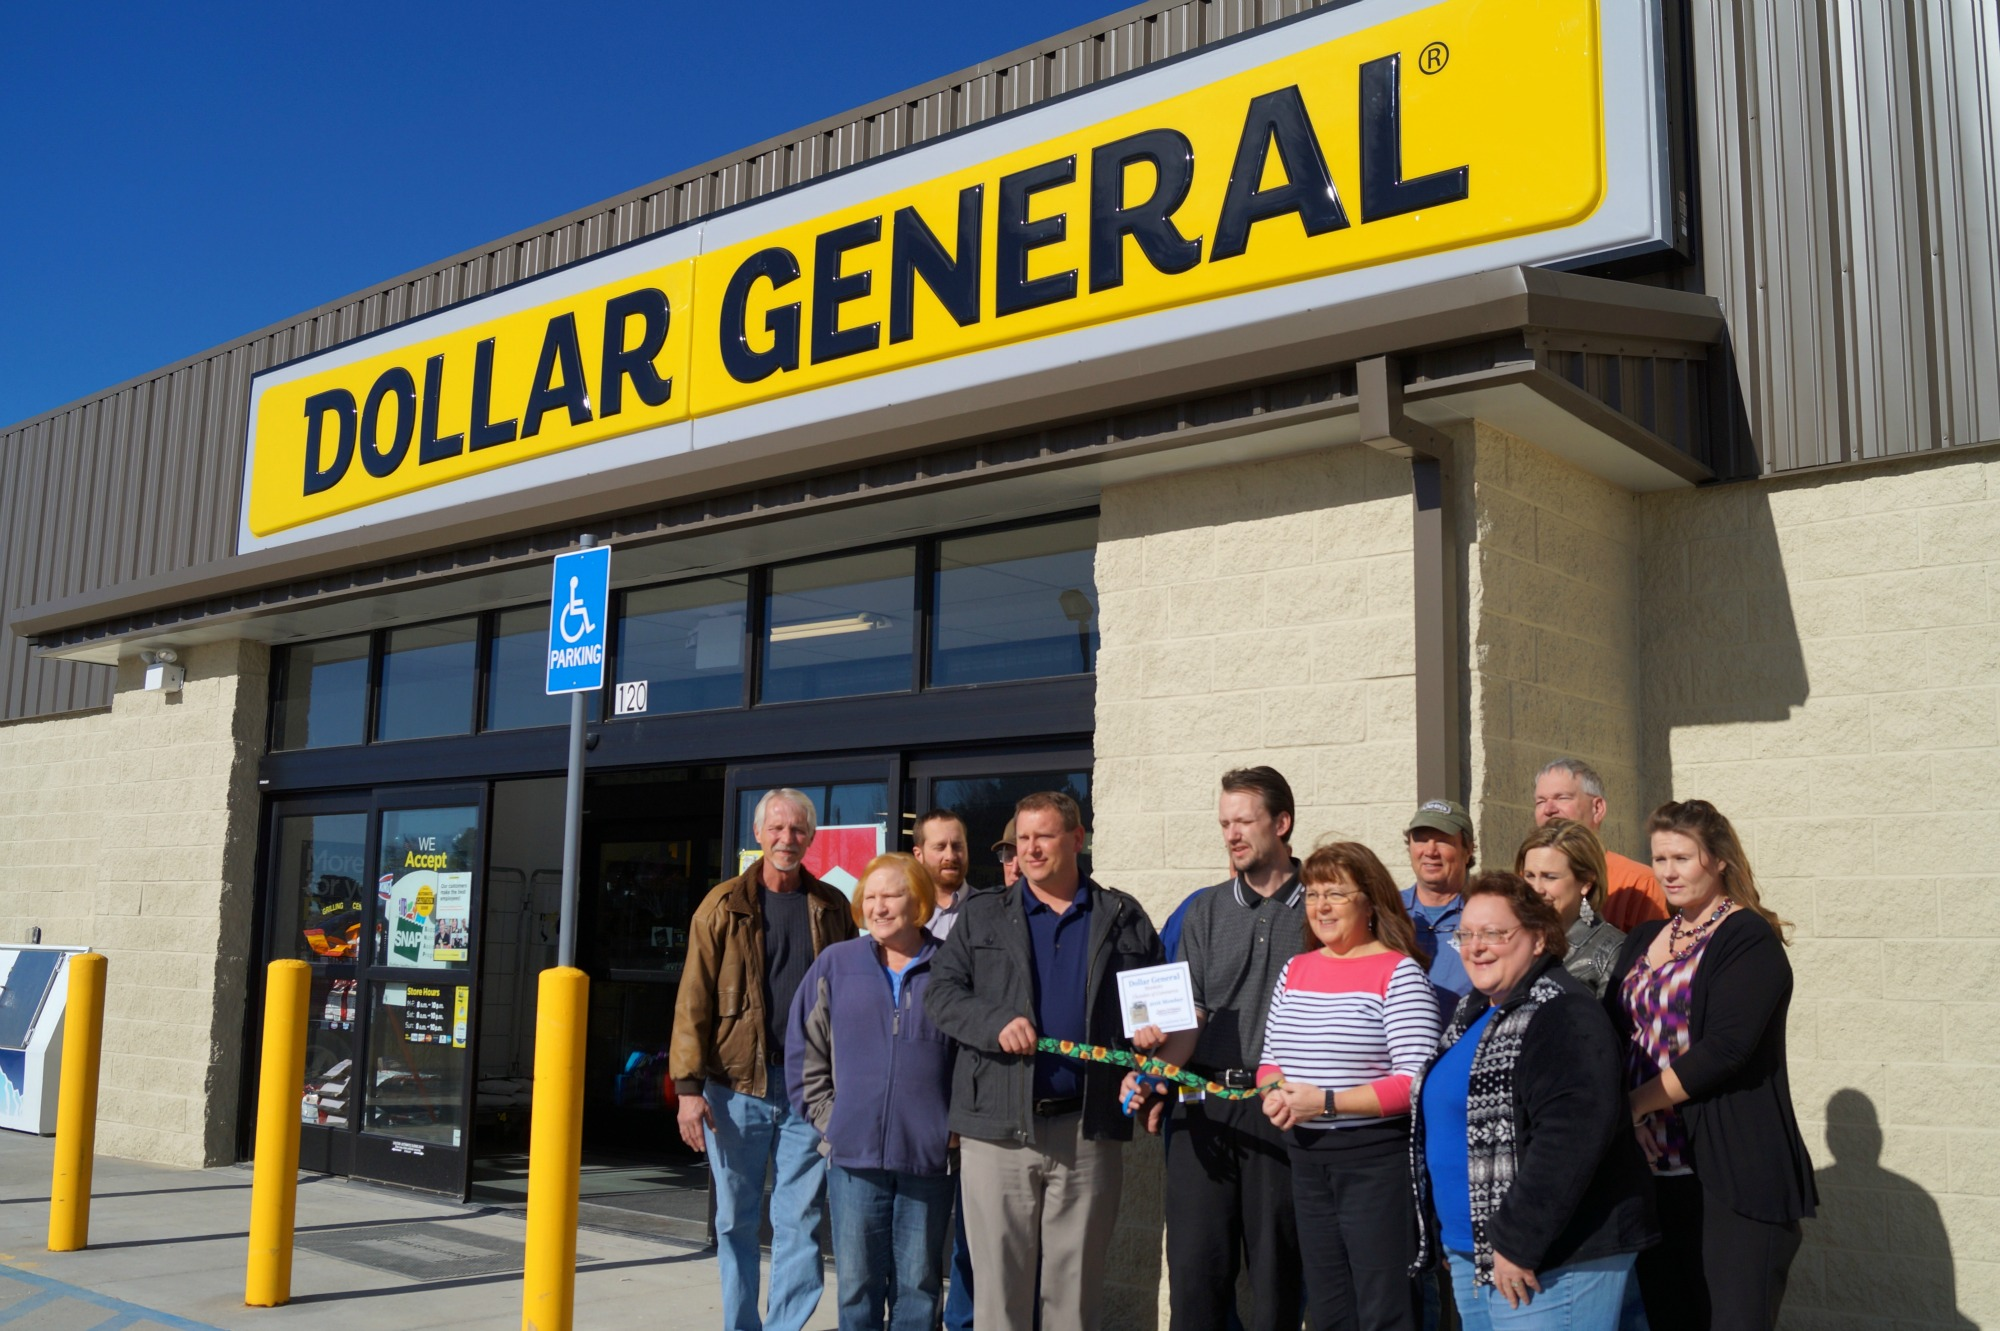 Kansas jewell county randall - The Mankato Chamber Of Commerce And Jewell County Community Development Jccda Hosted A Grand Opening Ribbon Cutting For The New Dollar General Location In